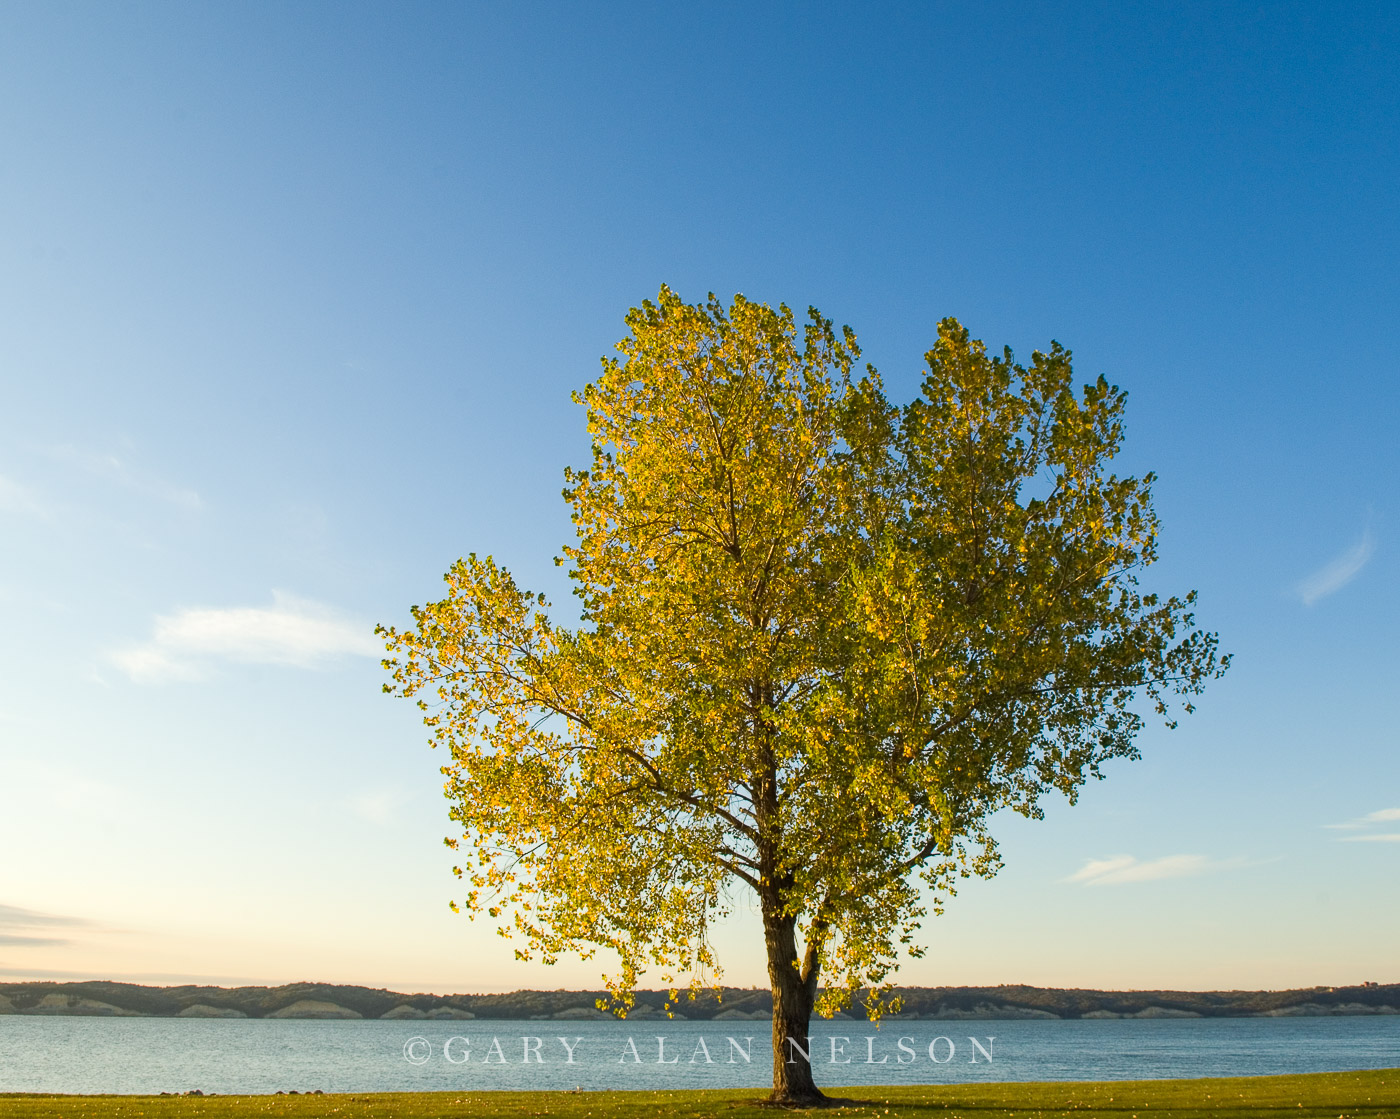 Missouri river, national recreation area, tree, lake, photo